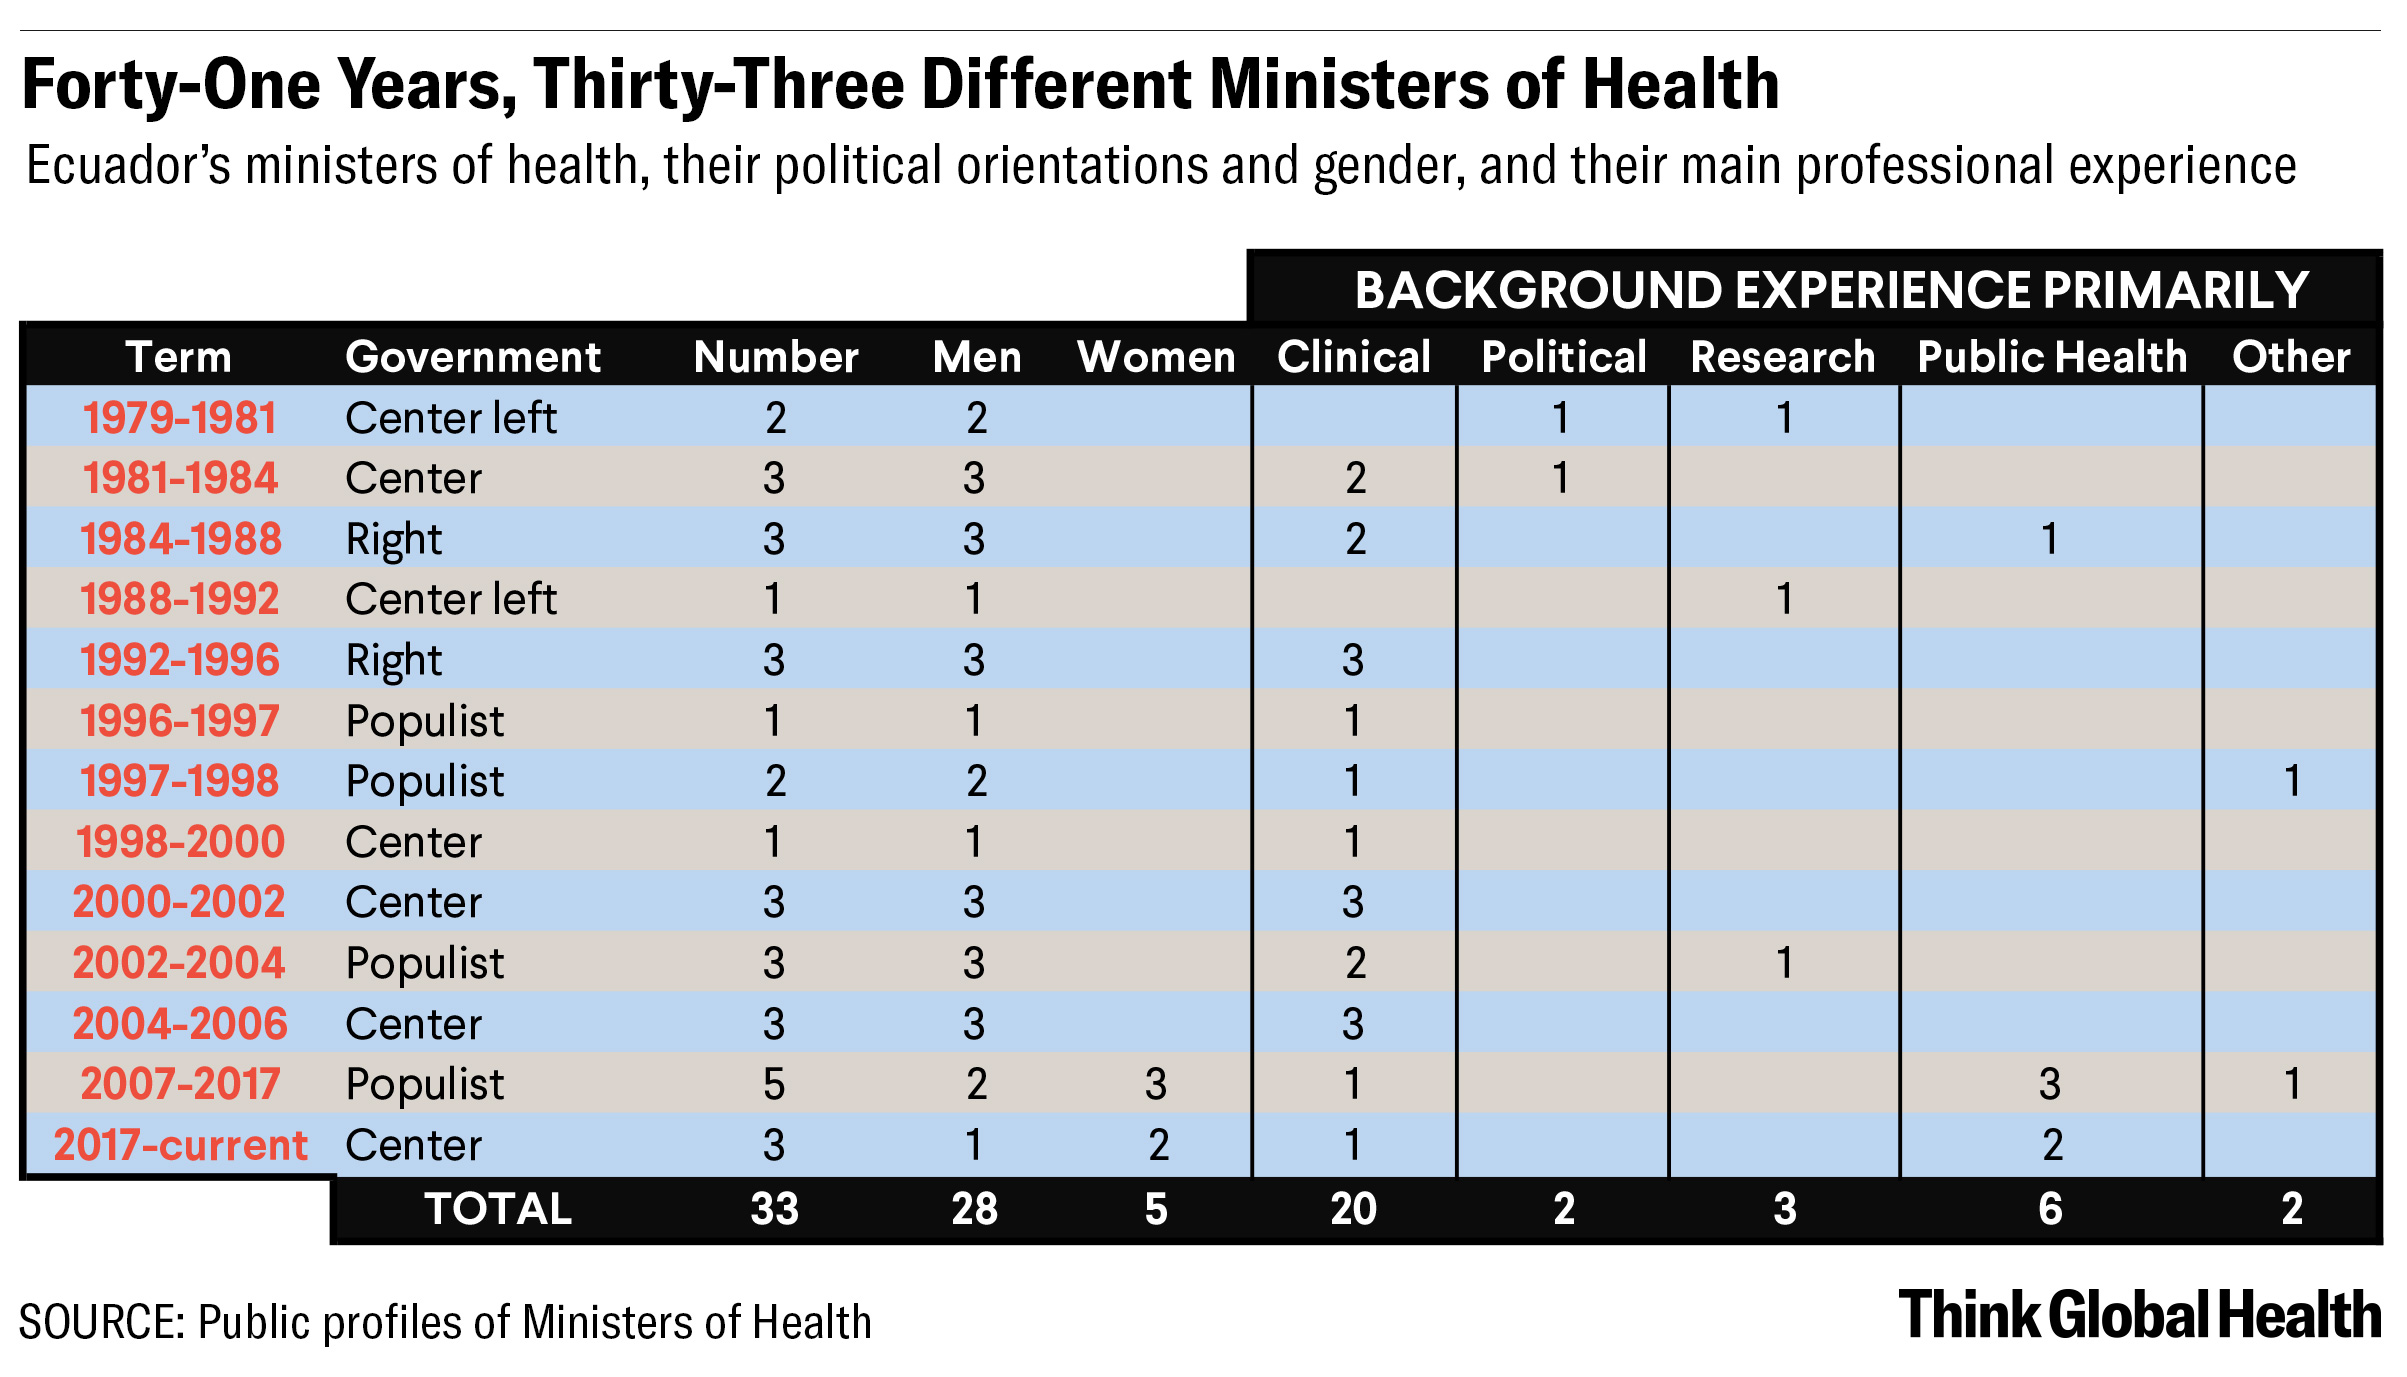 the image is a table detailing 41 years of health ministers in Ecuador.